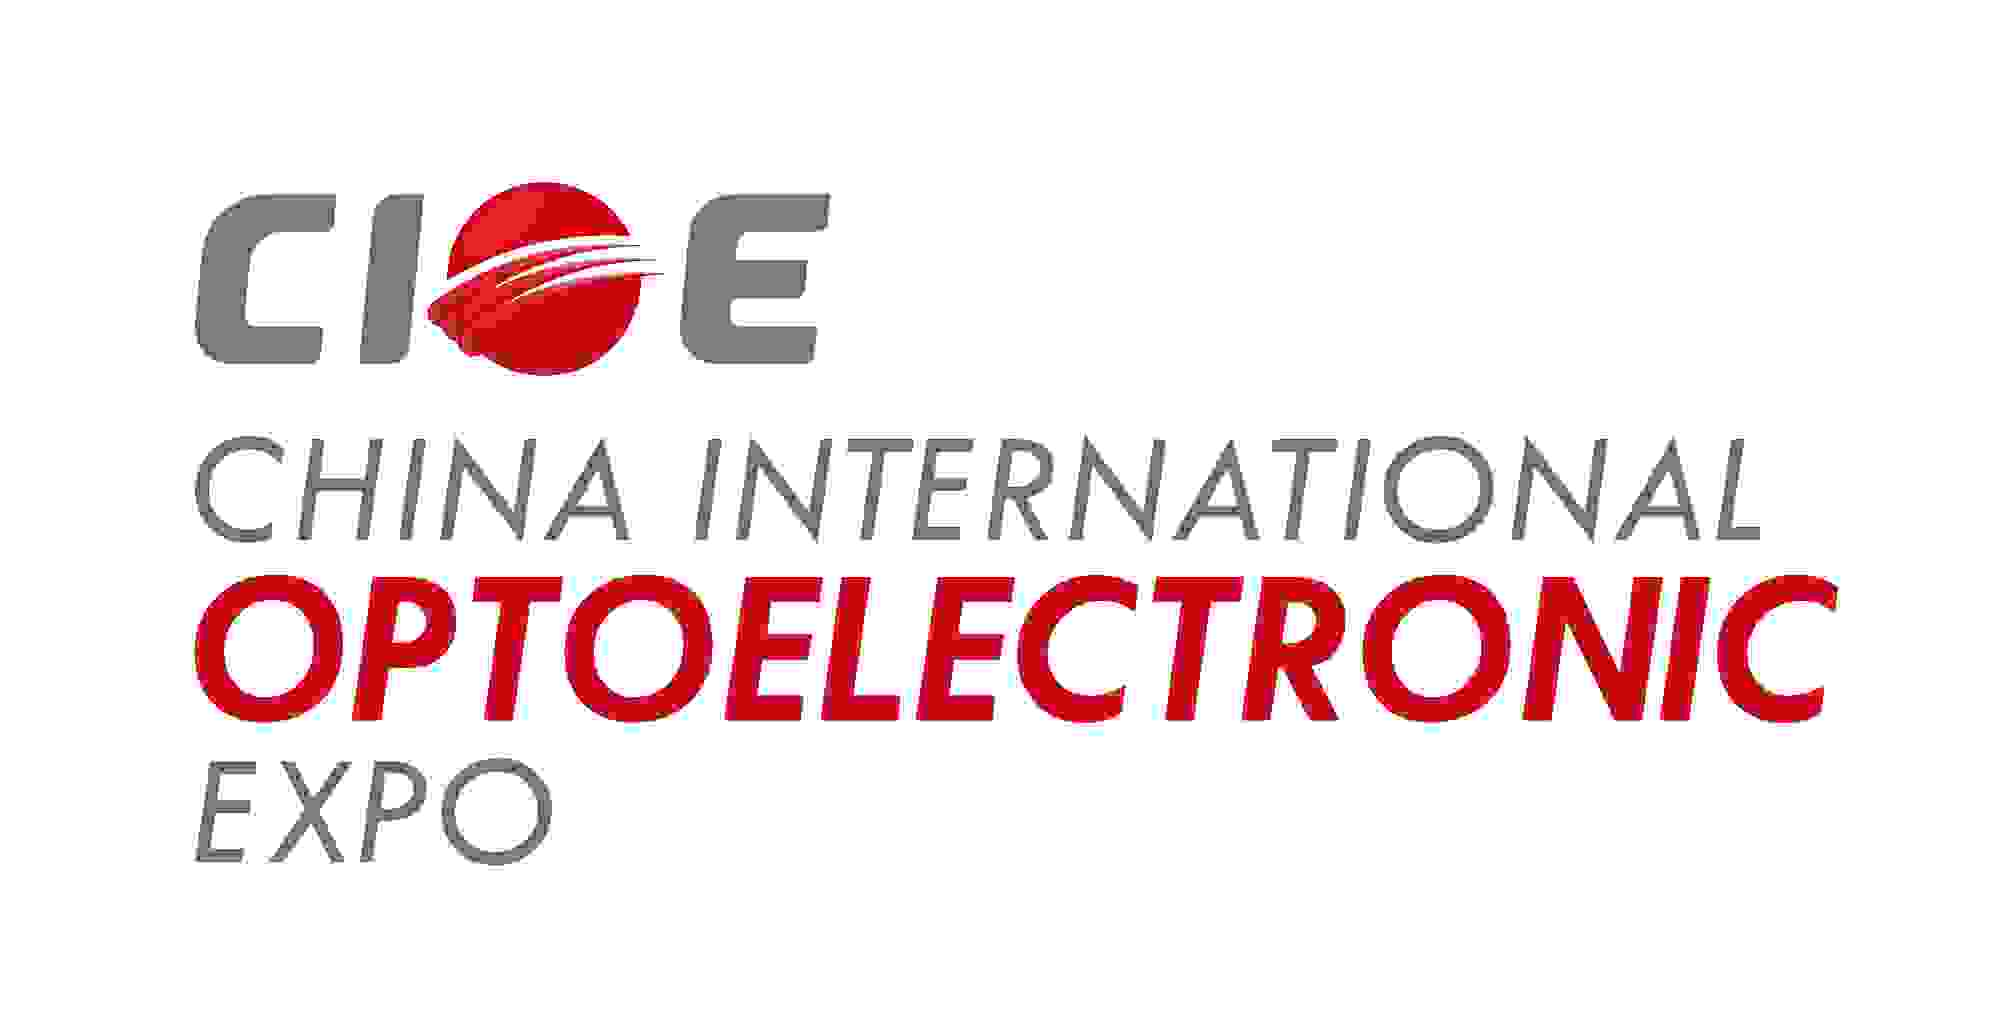 China International Optoelectronic Expo